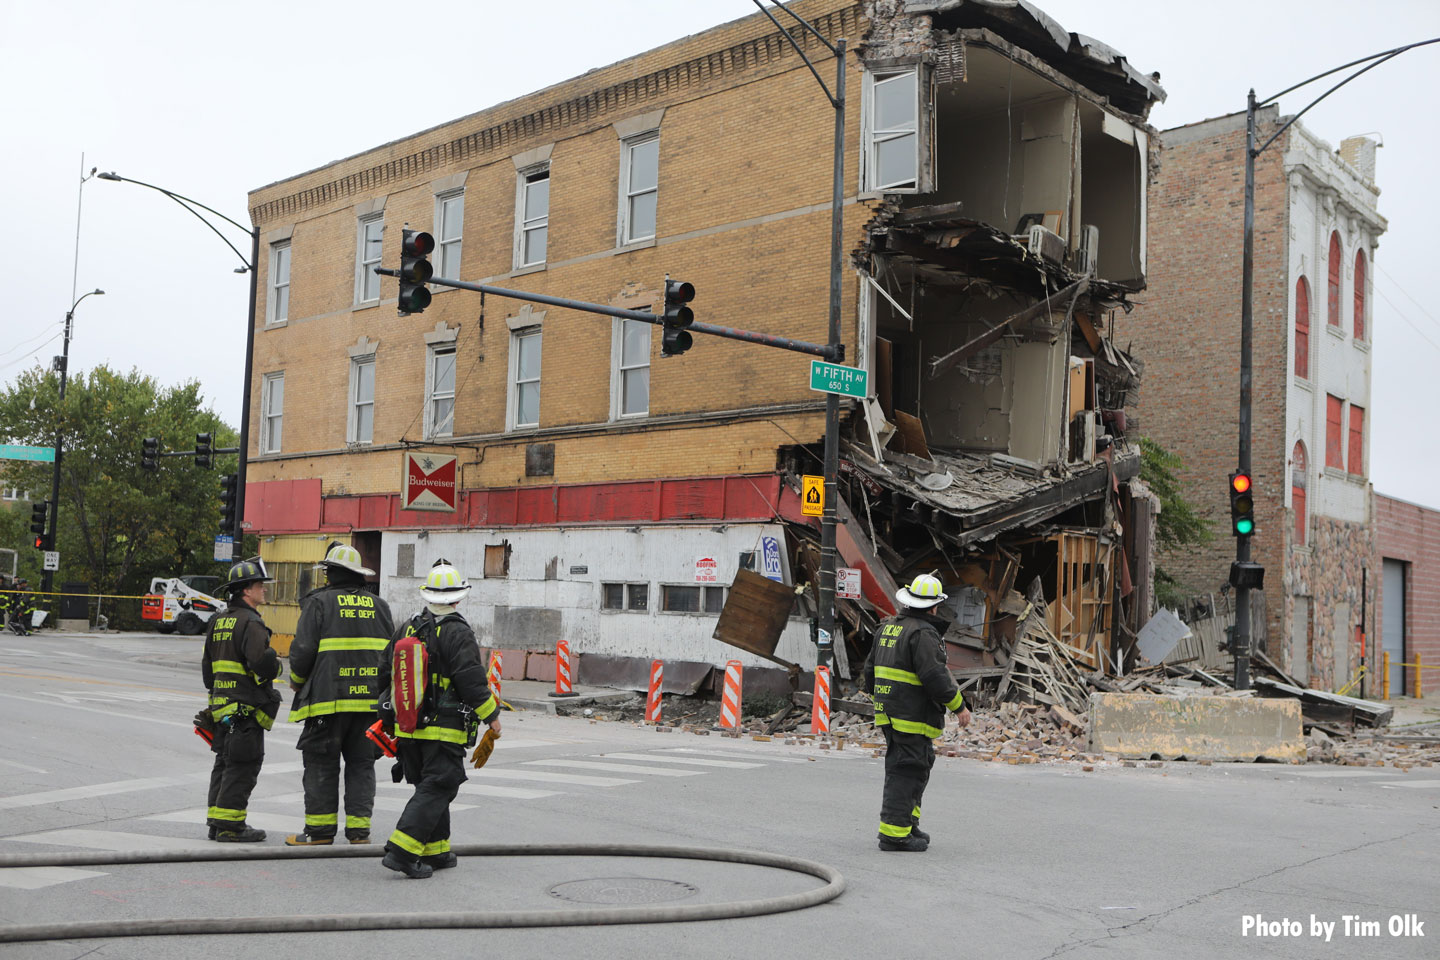 Chicago firefighters operate at the scene of a collapsed structure.